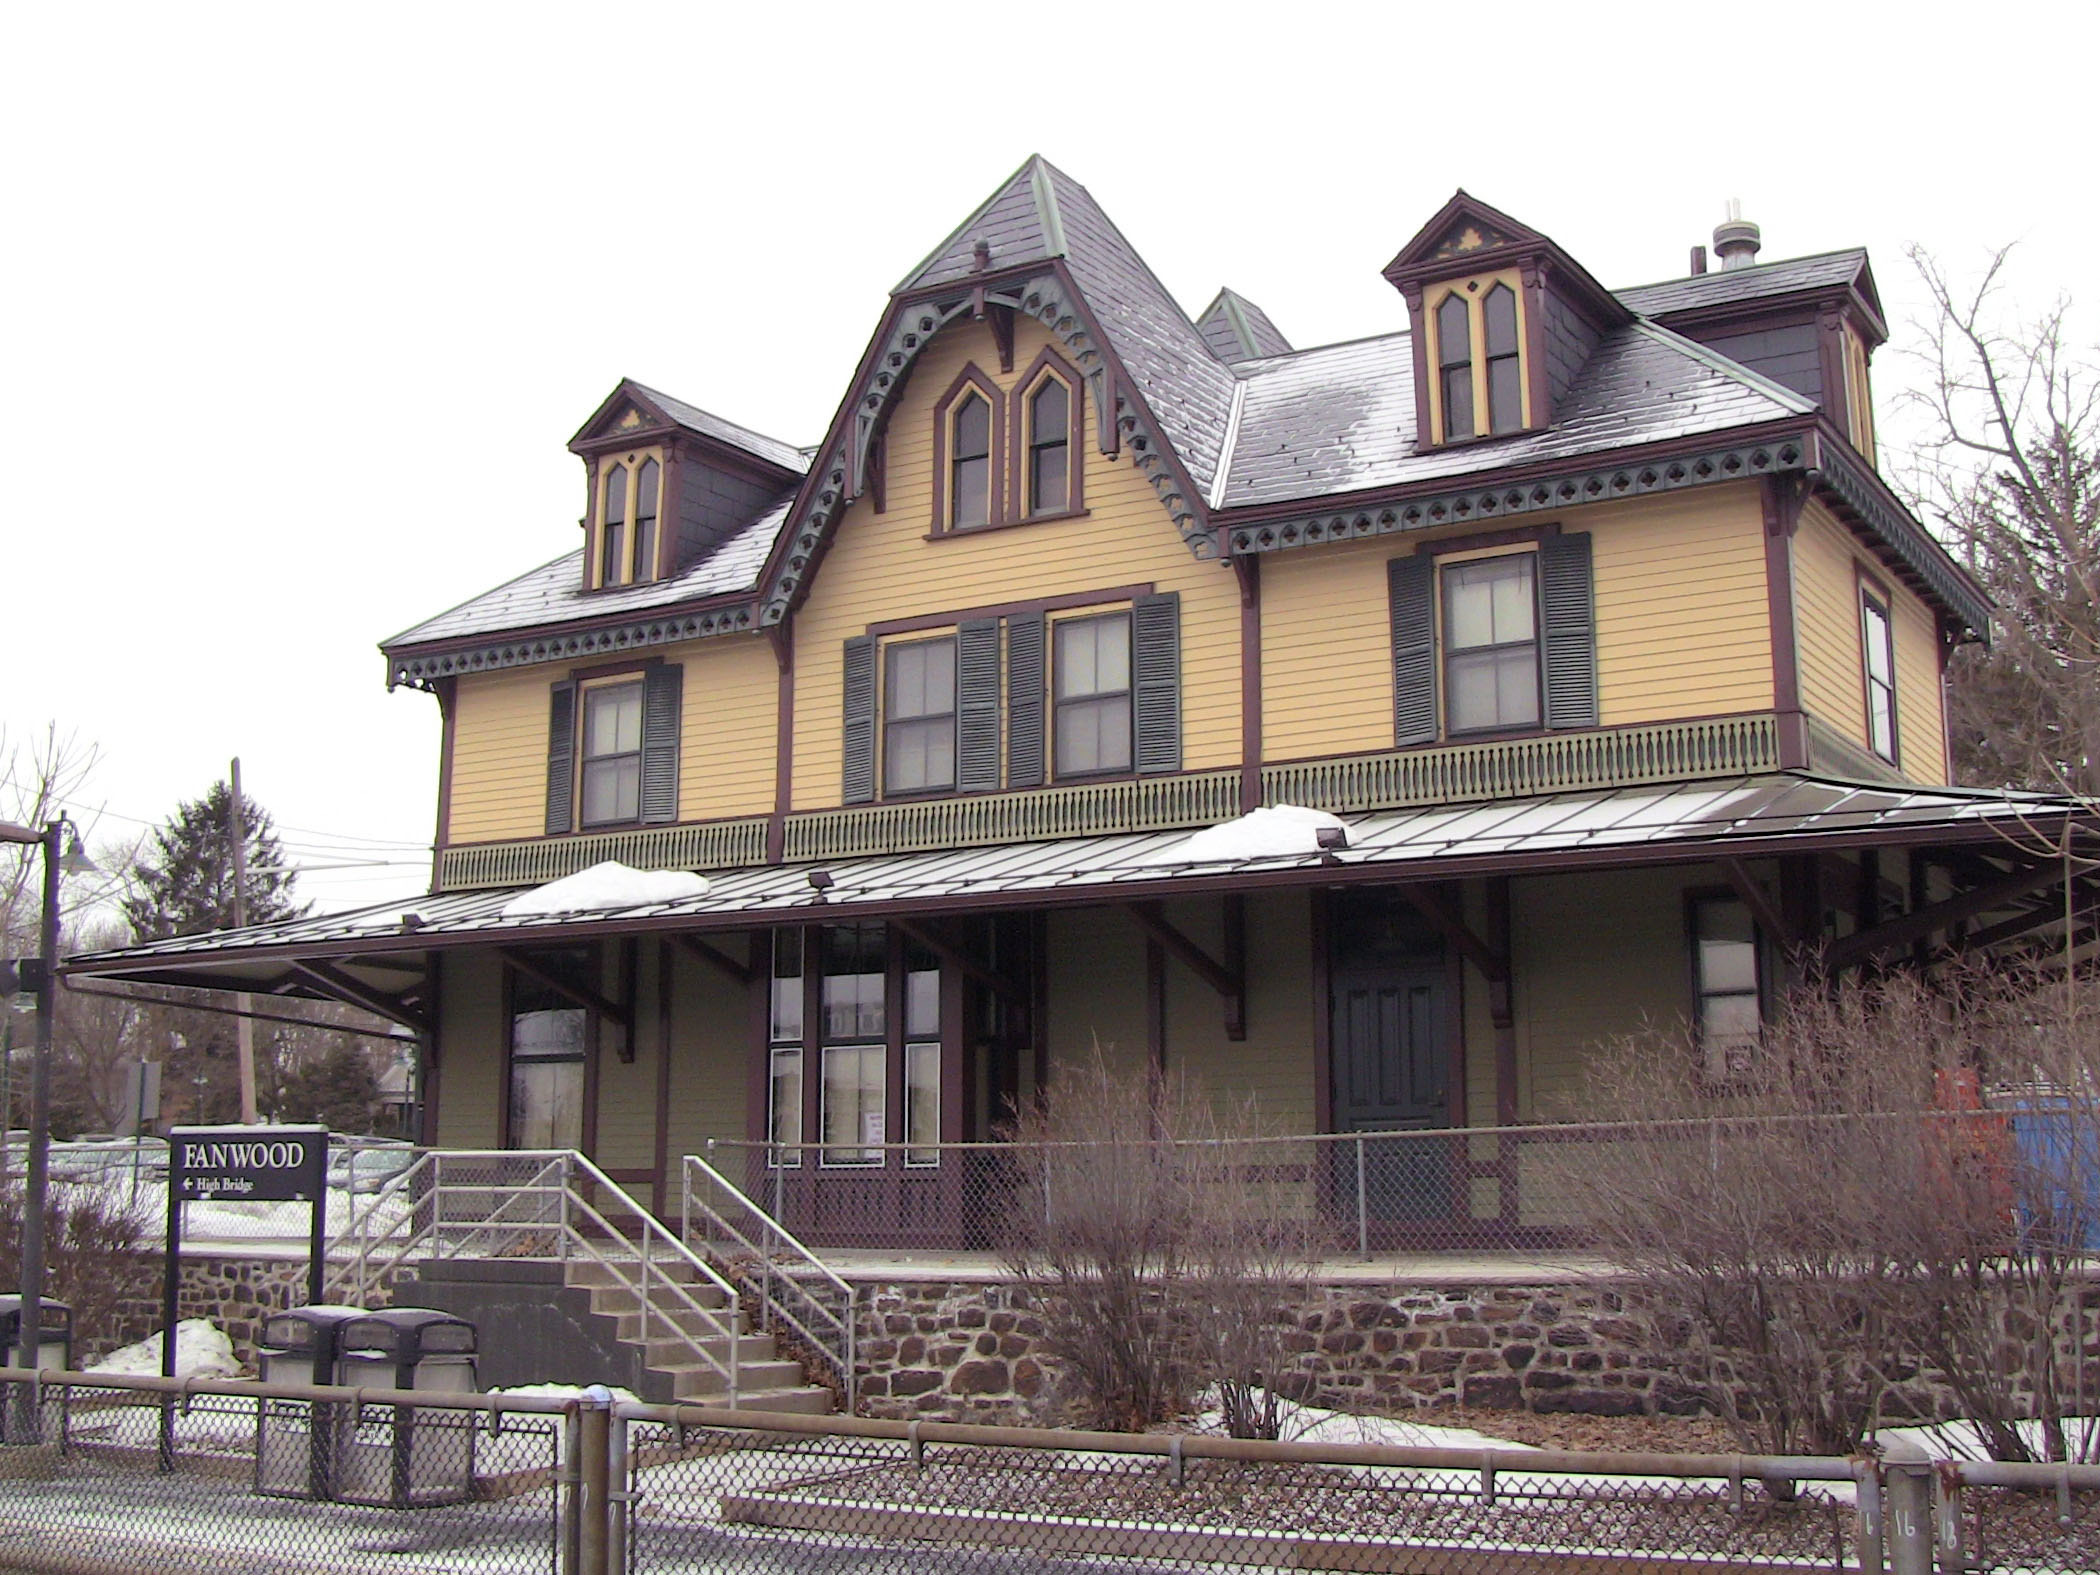 163c222ea8da6e7e1d18_Fanwood_Train_Station_House.jpg